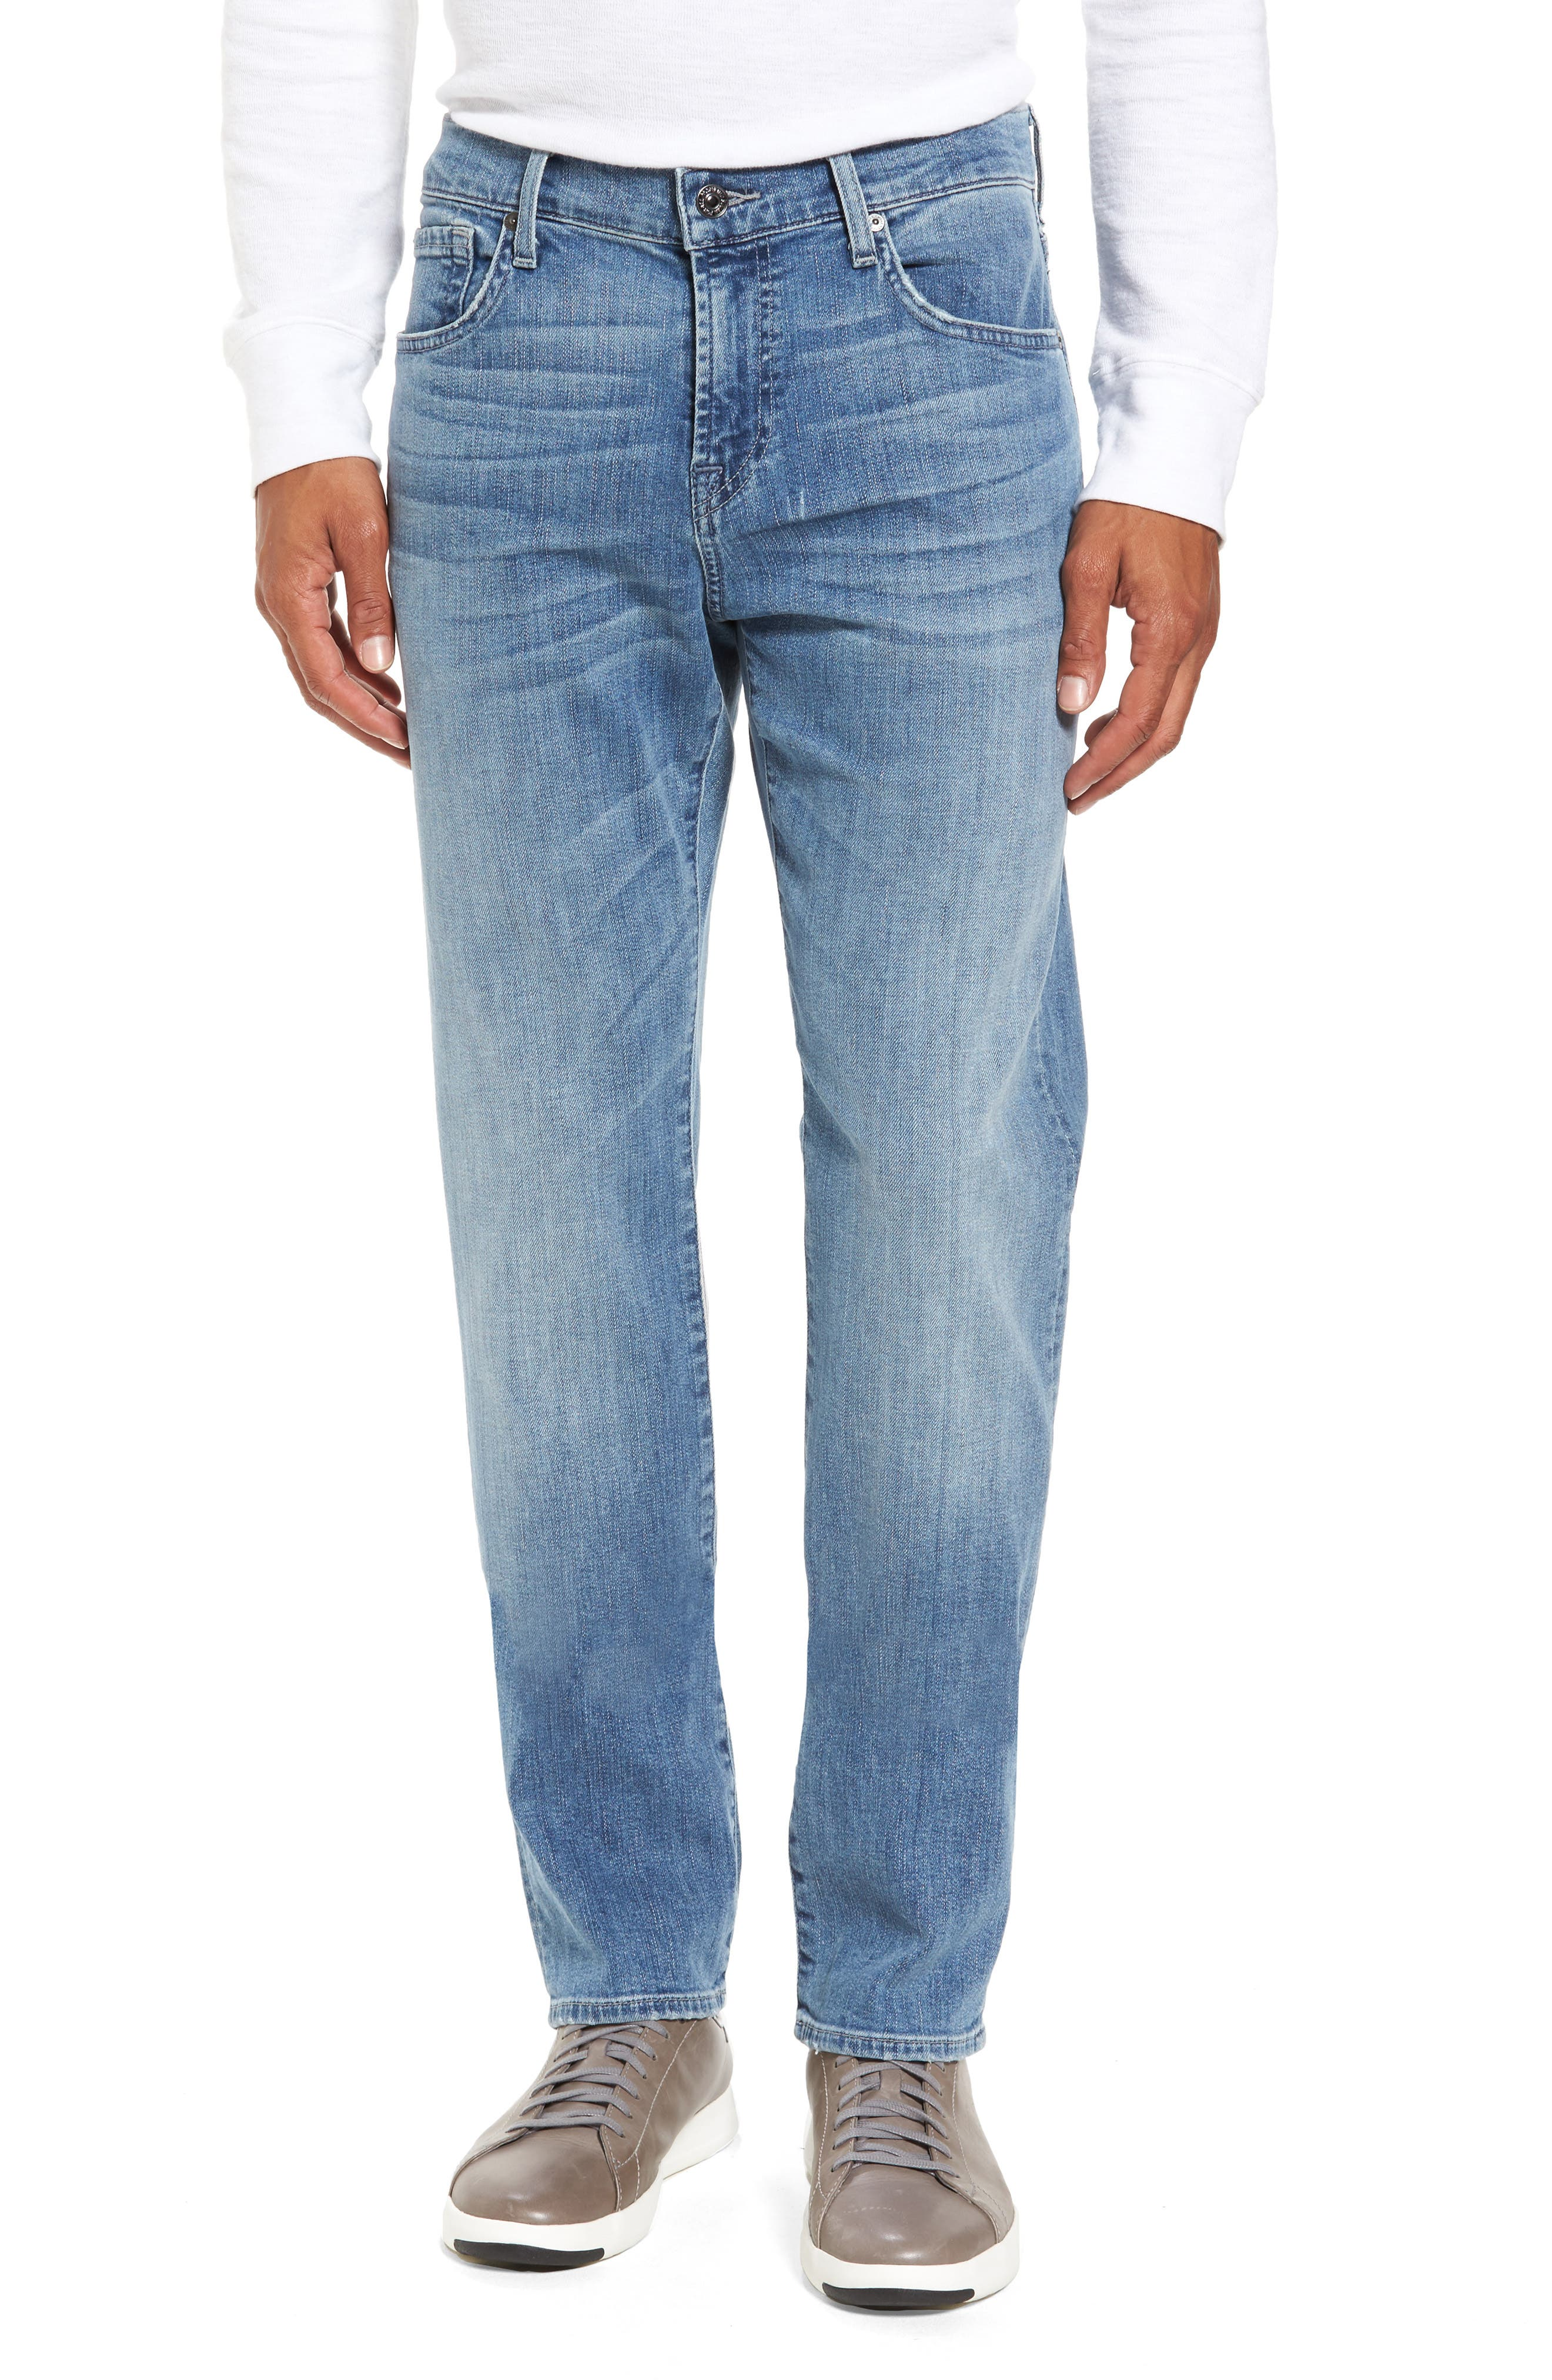 7 For All Mankind Slim Straight Leg Jeans,                             Main thumbnail 1, color,                             400